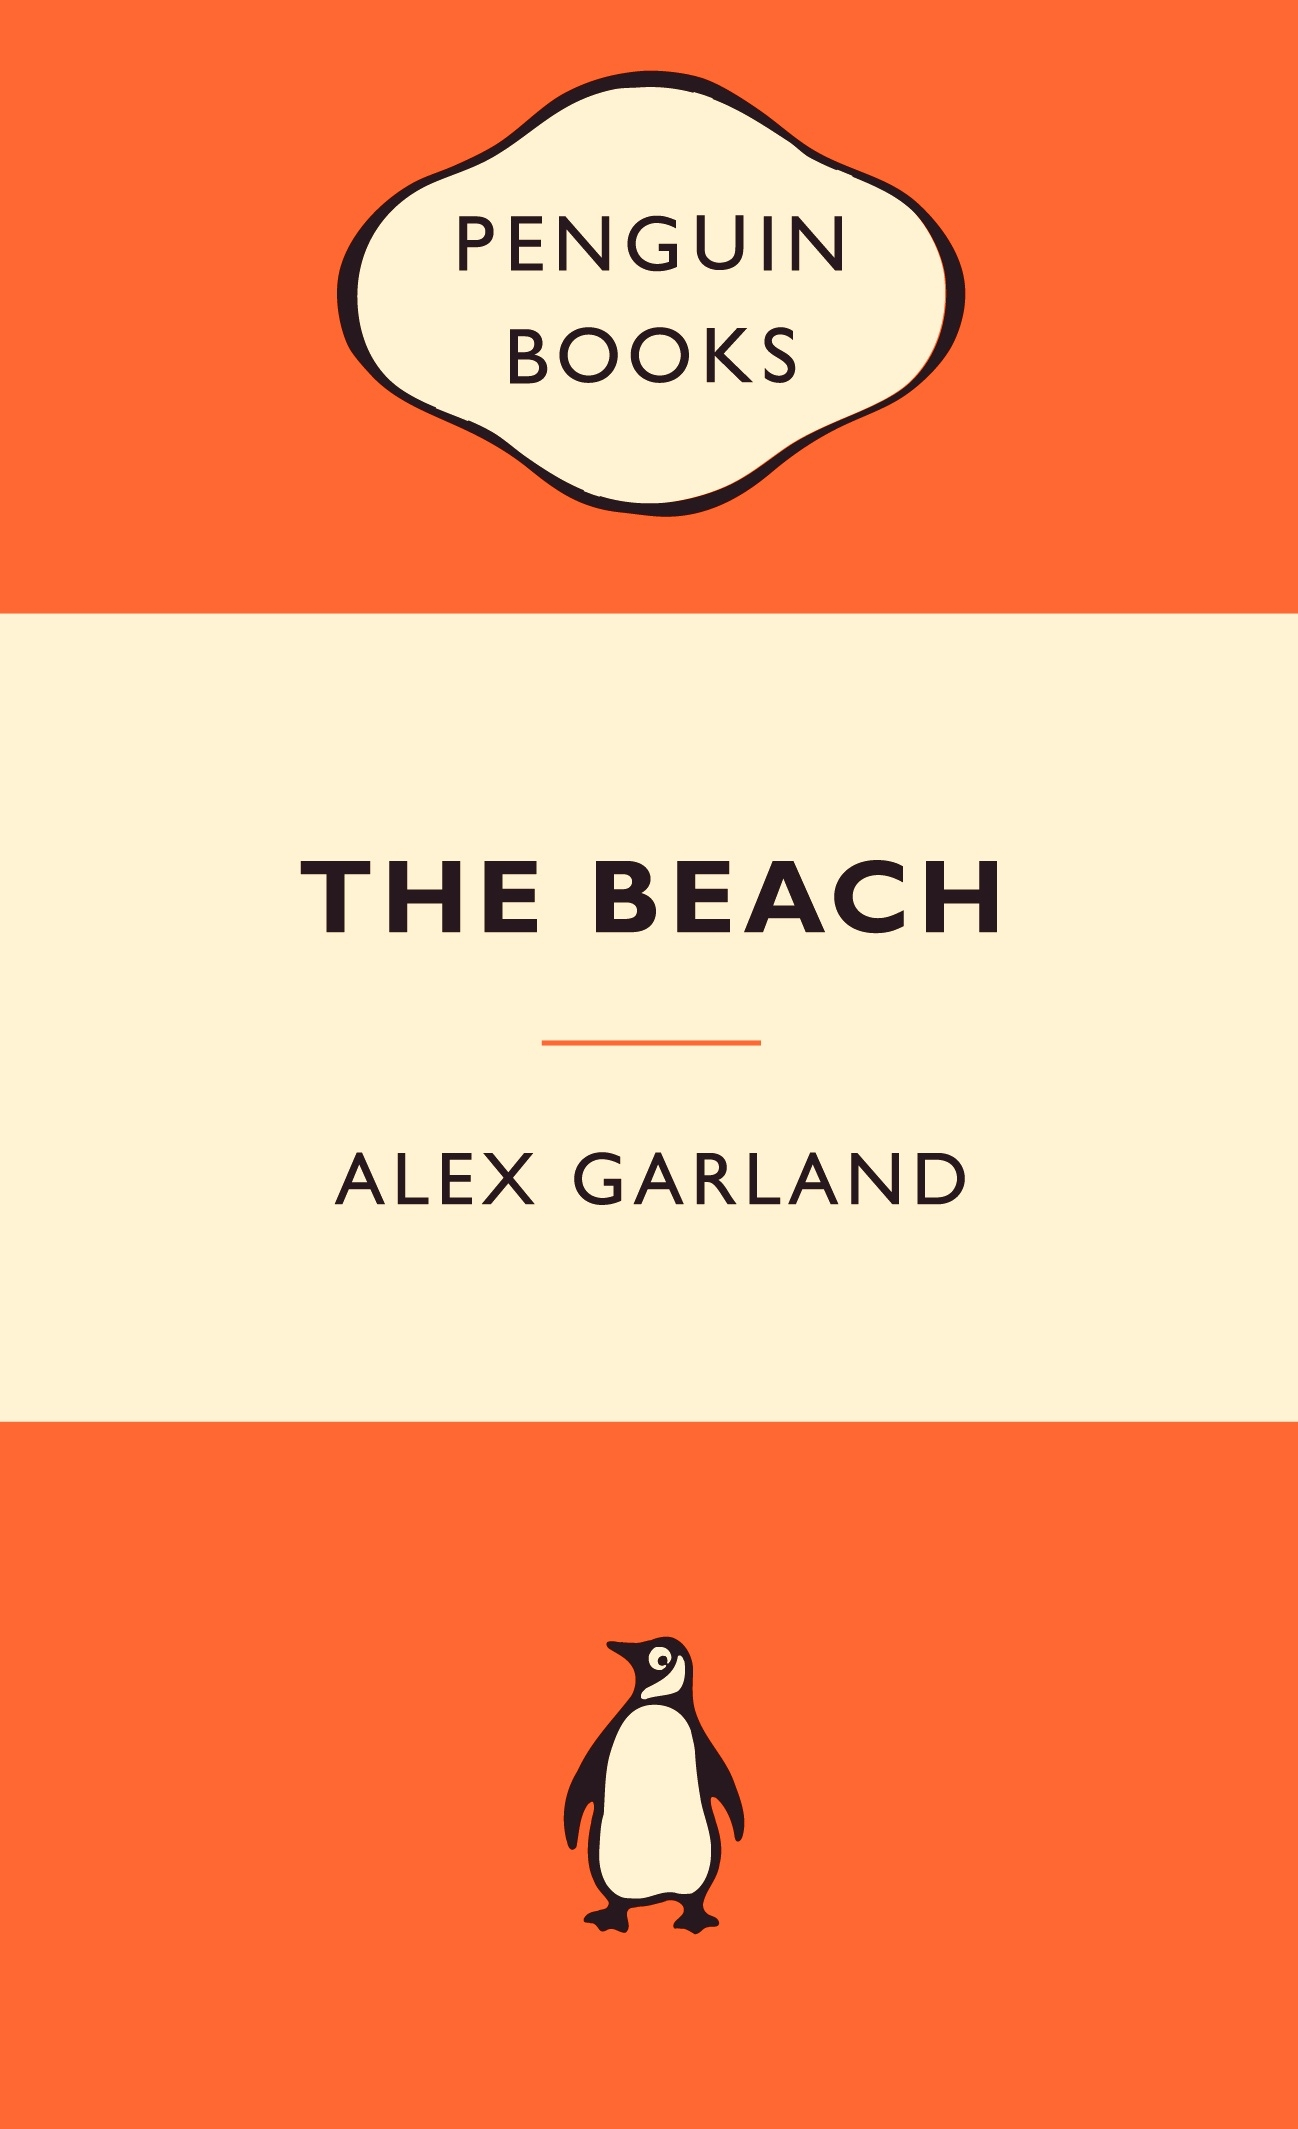 the beach alex garland The beach by alex garland portrays a form of tourism where it differentiates the authentic experiences of a traveller to a tourist danny boyle's(2000) adaptation.